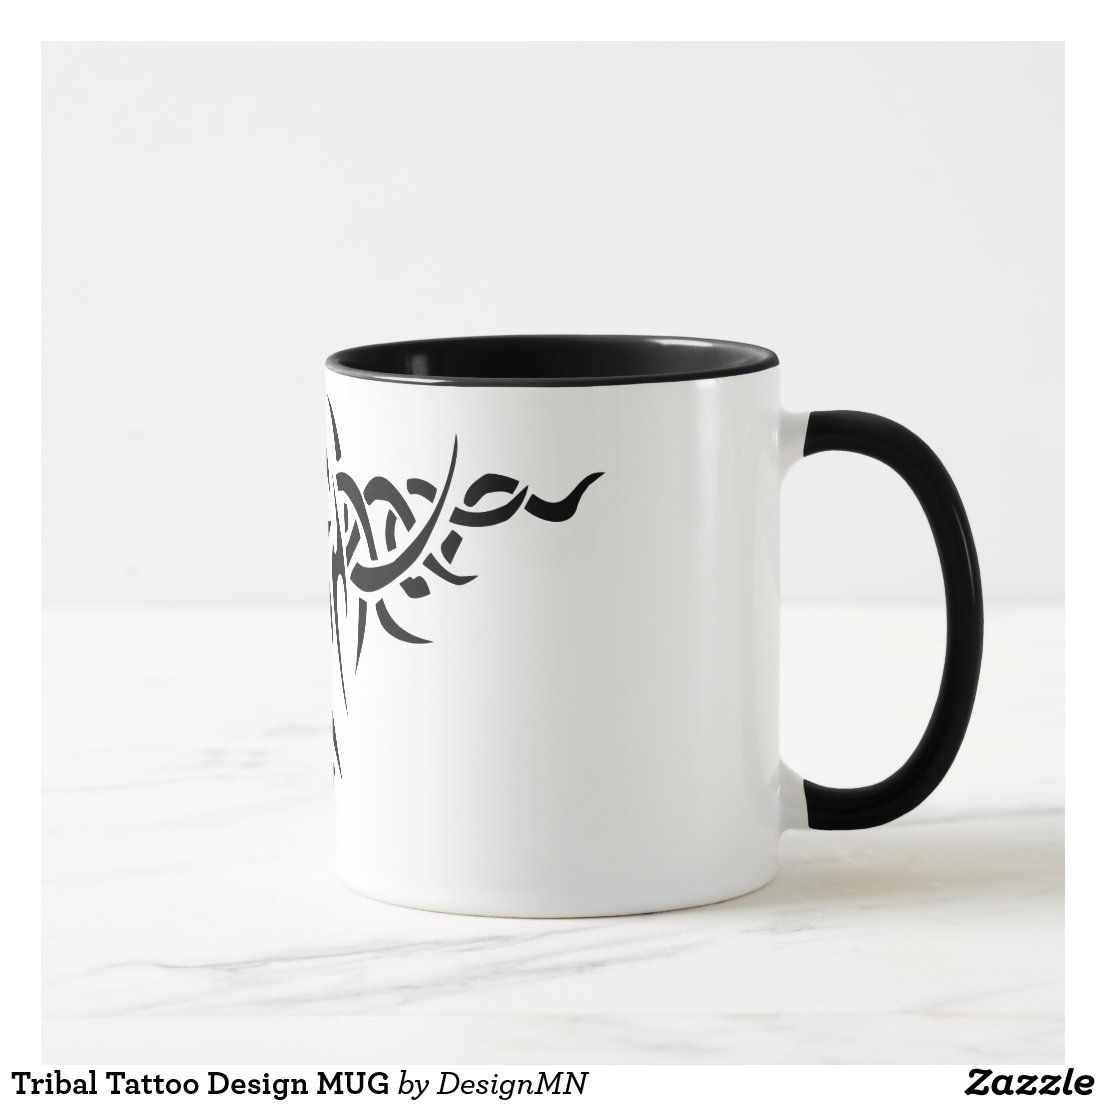 Tribal Tattoo Design MUG #decor #decoration #decoracao #decora #decorating #decorations #decoracion #decorate #decorative #decoracaodeinteriores #decorando #decoraci #decore #decoradora #decorar #decoracaocriativa #decorlovers #decorhome #decoratedcookies #decorideas #decorator #decorationideas #decoracaodecasamento #decorinspo #decoratingideas #decoraciondeinteriores #decorinspiration #decoracaoinfantil #Decoro #decoracaofeminina #mug